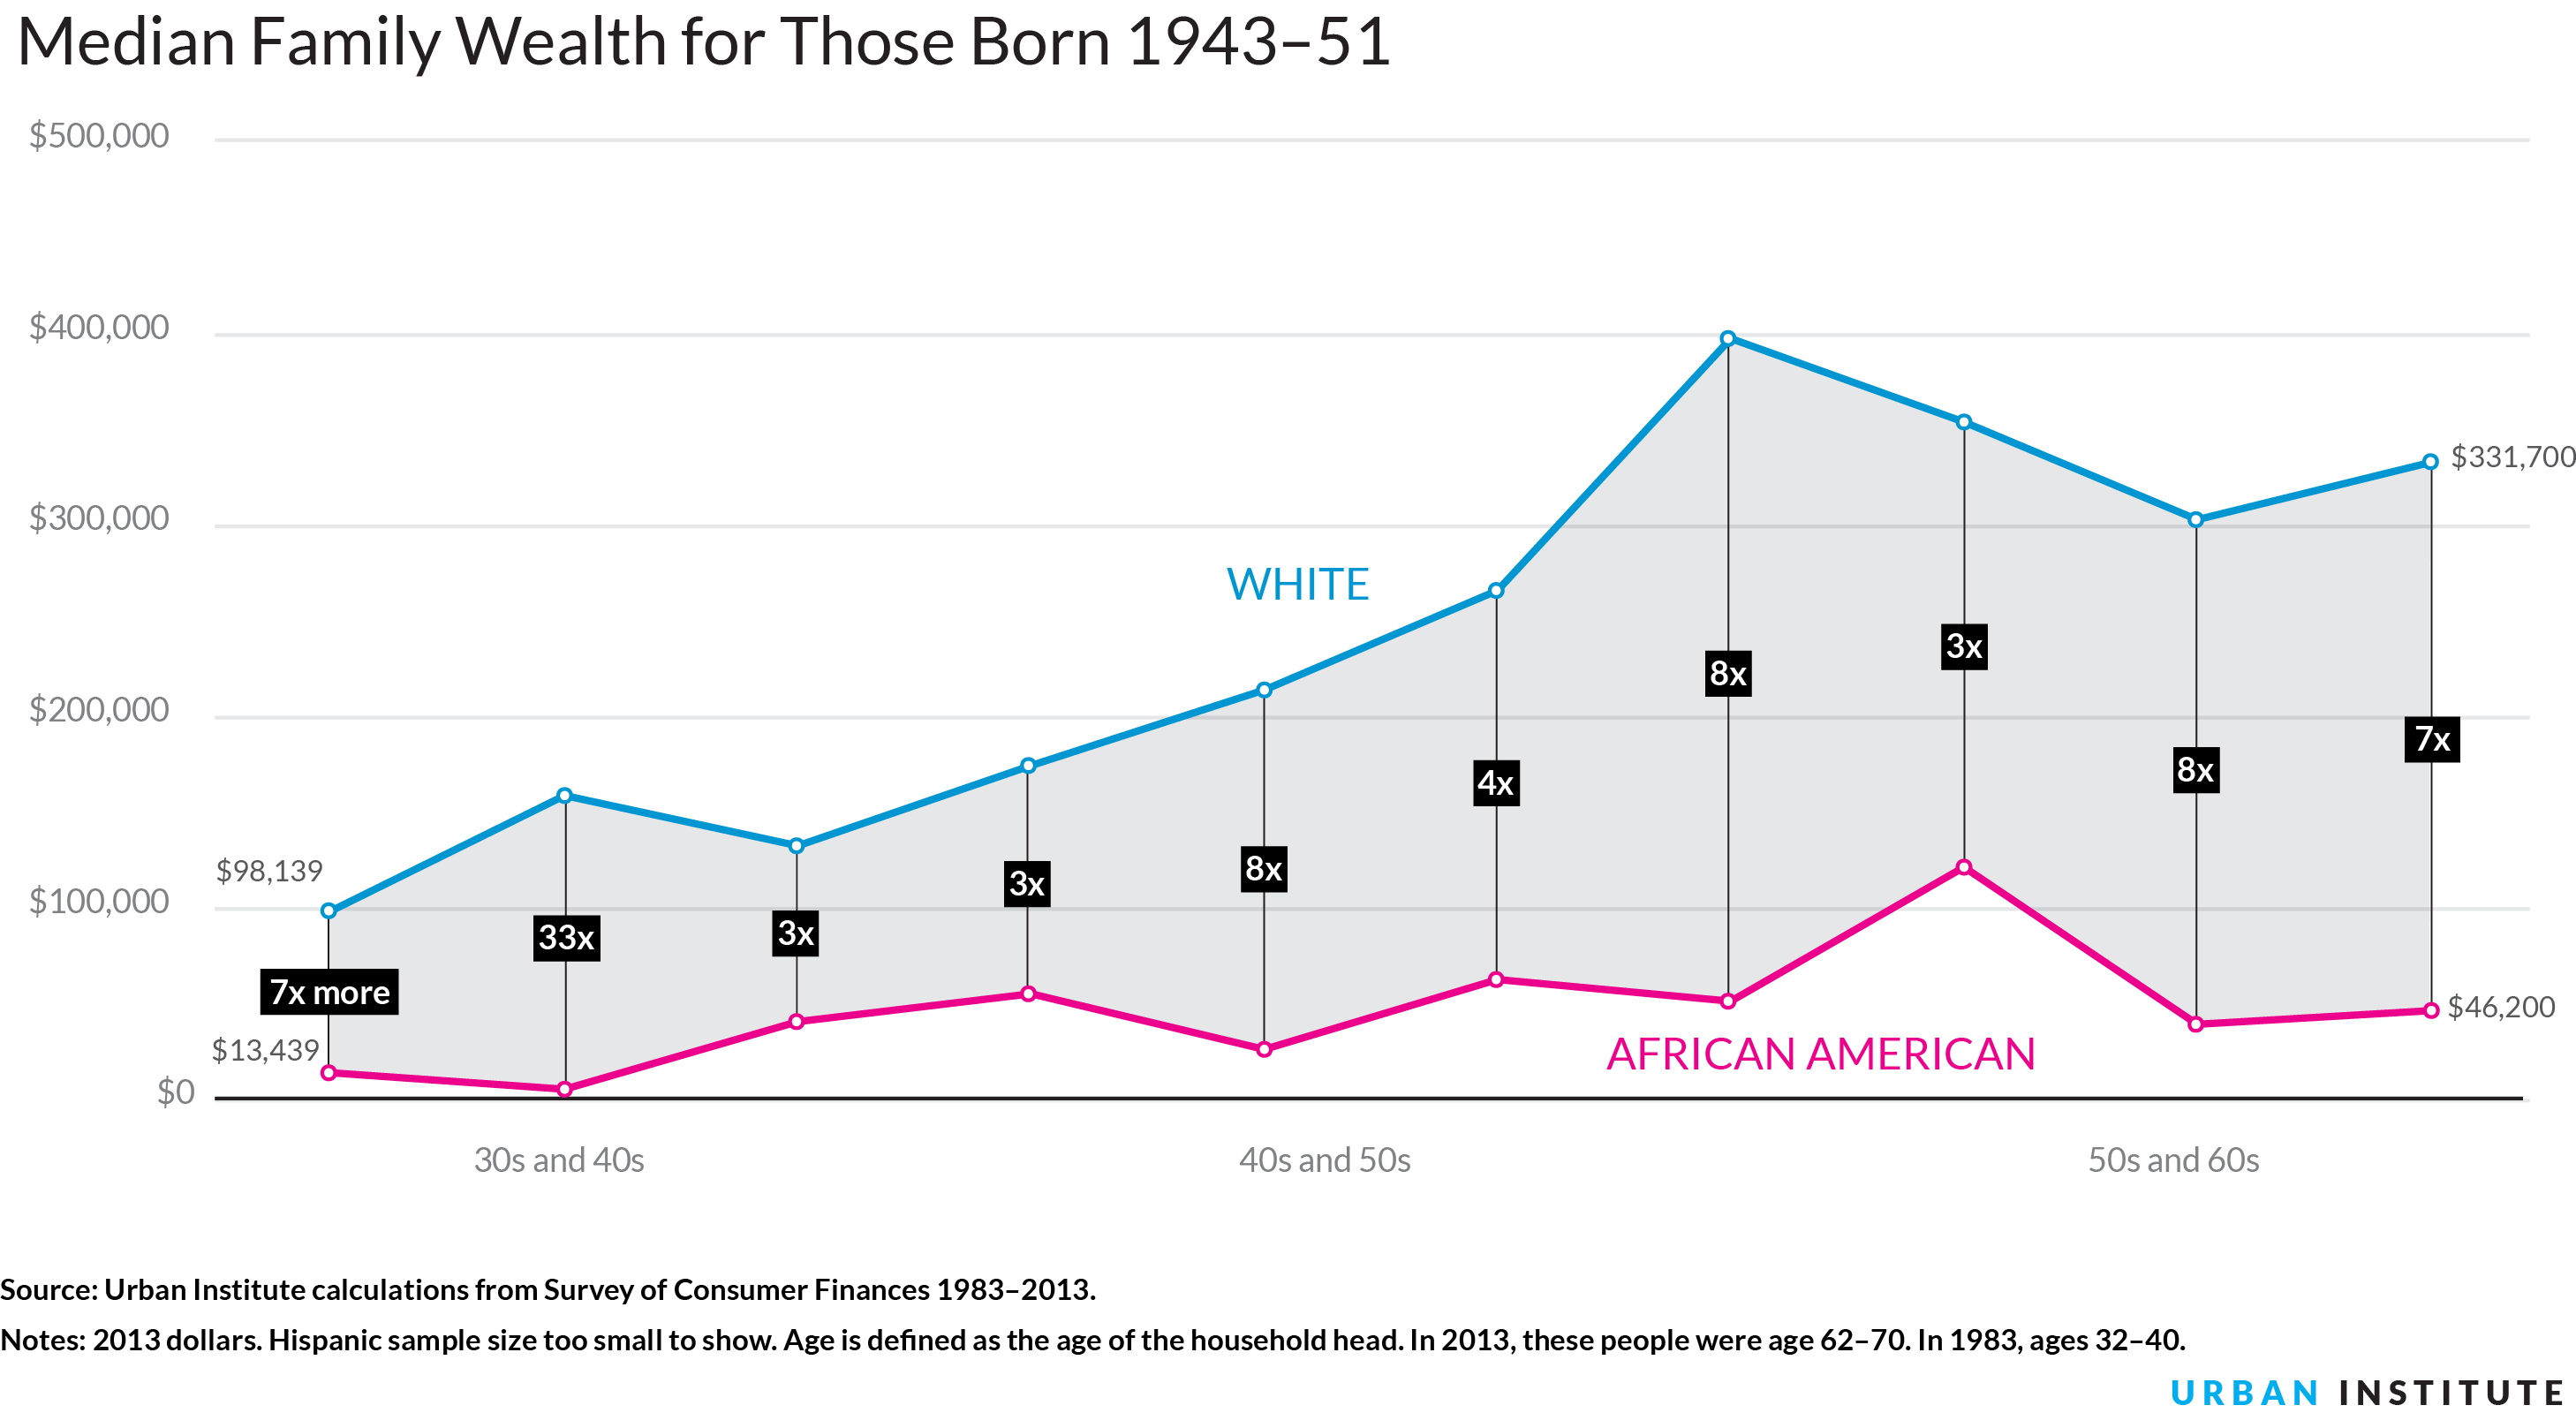 racial wealth inequality Caitlin maltbie 009606309 take home essay question 2: racial wealth gap between blacks and whites after racial discrimination was made illegal in the 1960s, blatant.